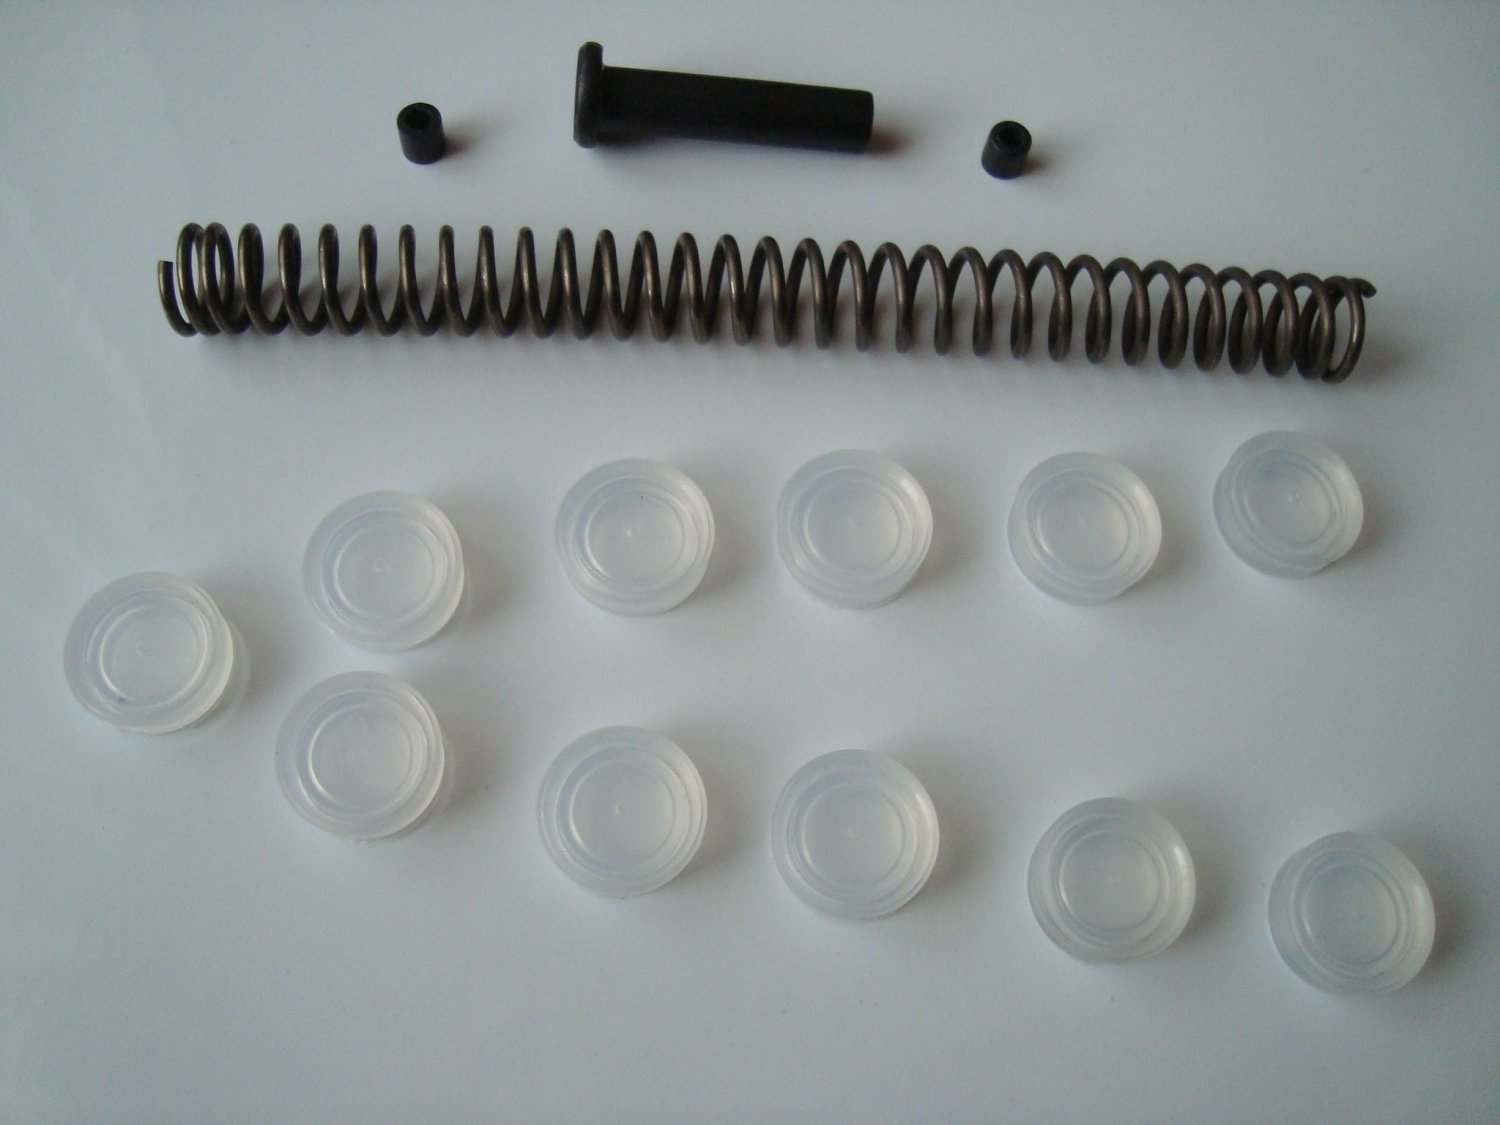 mp-53m, izh-53, mp-53 spring, sealing elements, weighting agent, upgrade parts for modernized baikal